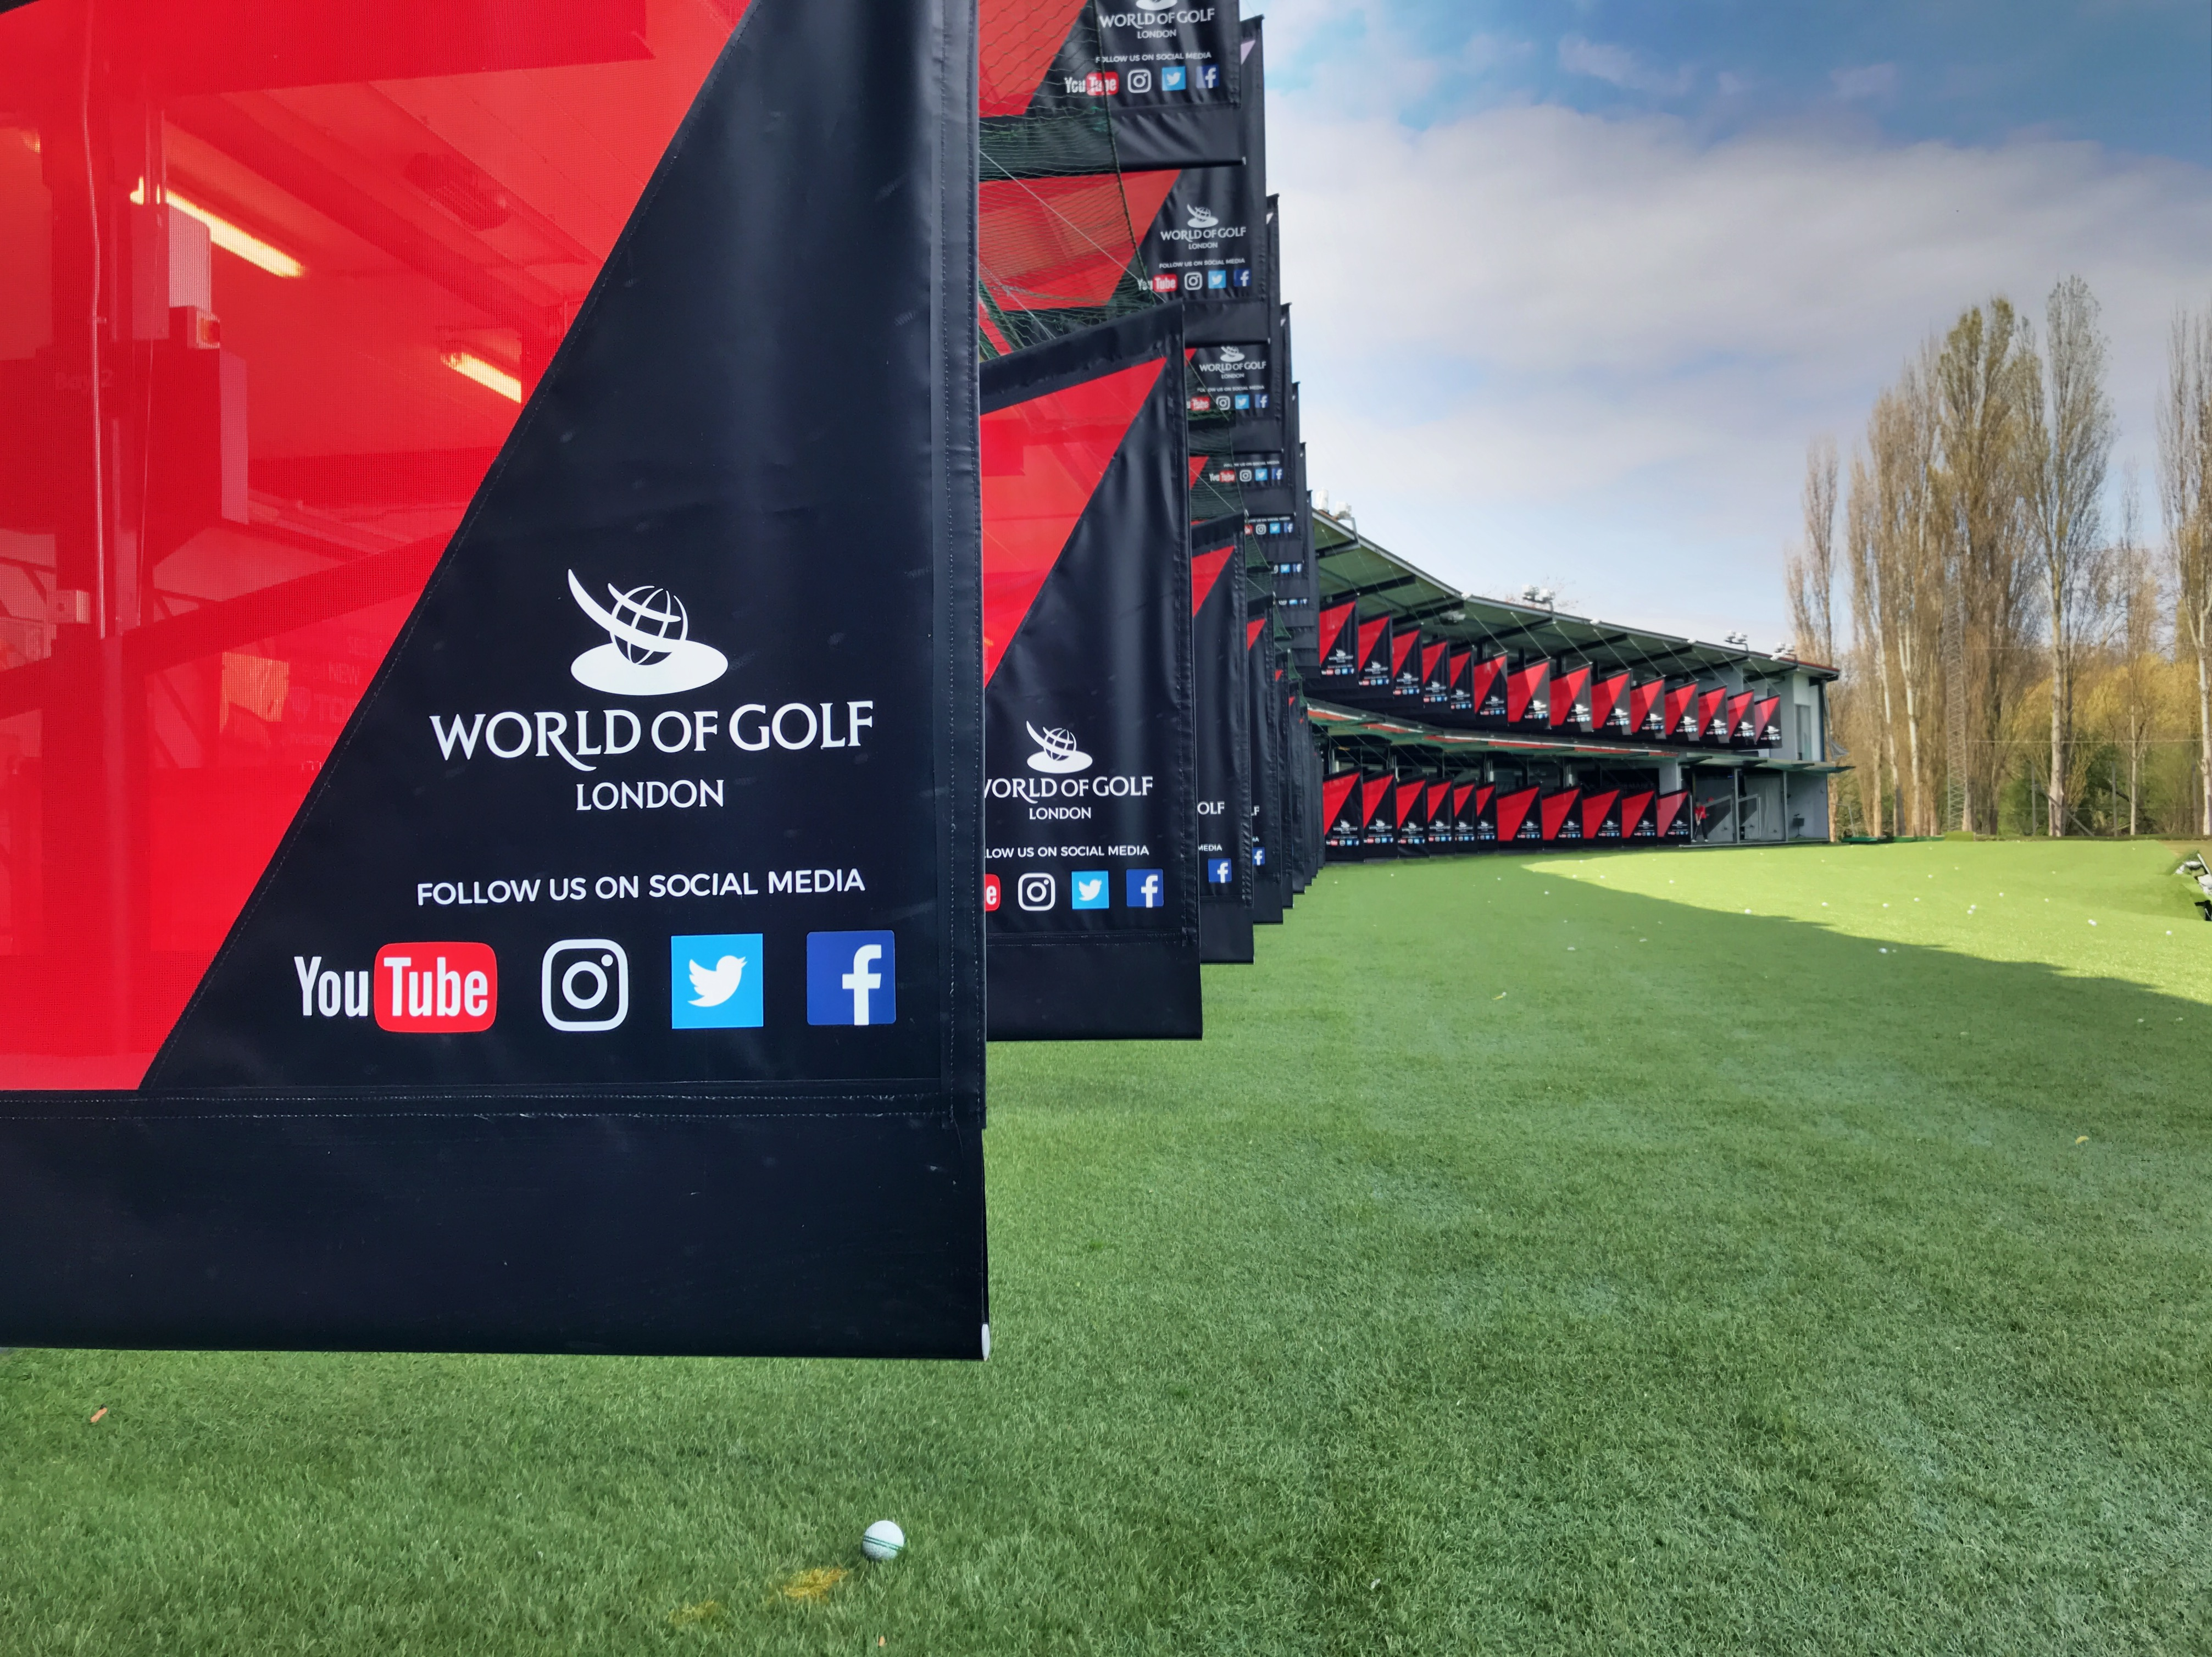 World of Golf London 2